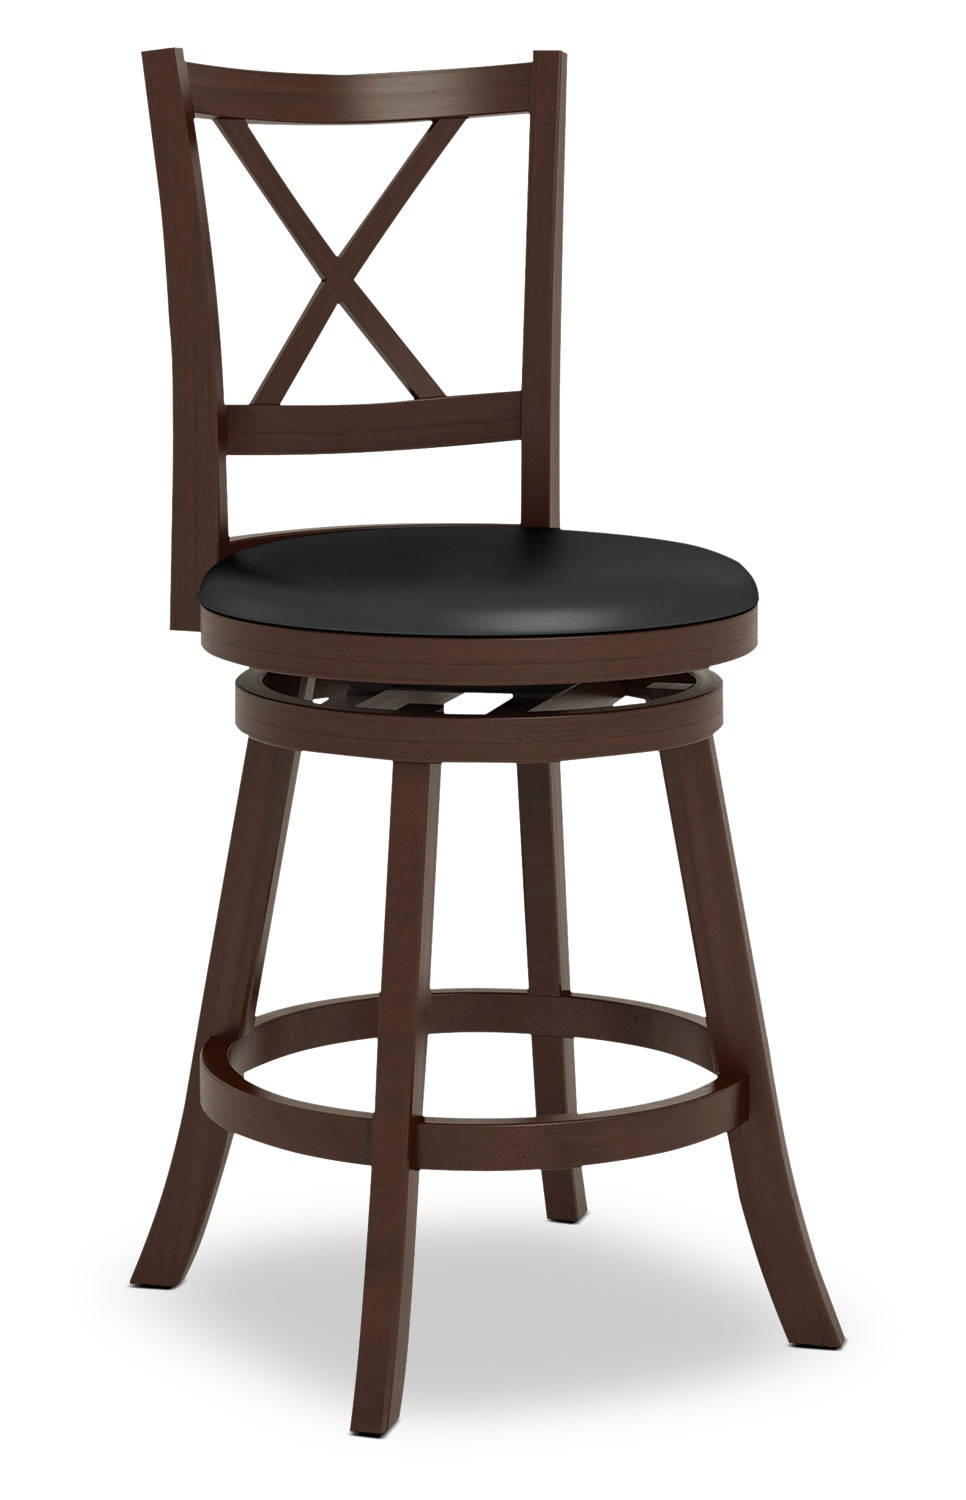 "Woodgrove 38"" Barstool - Cross Back"